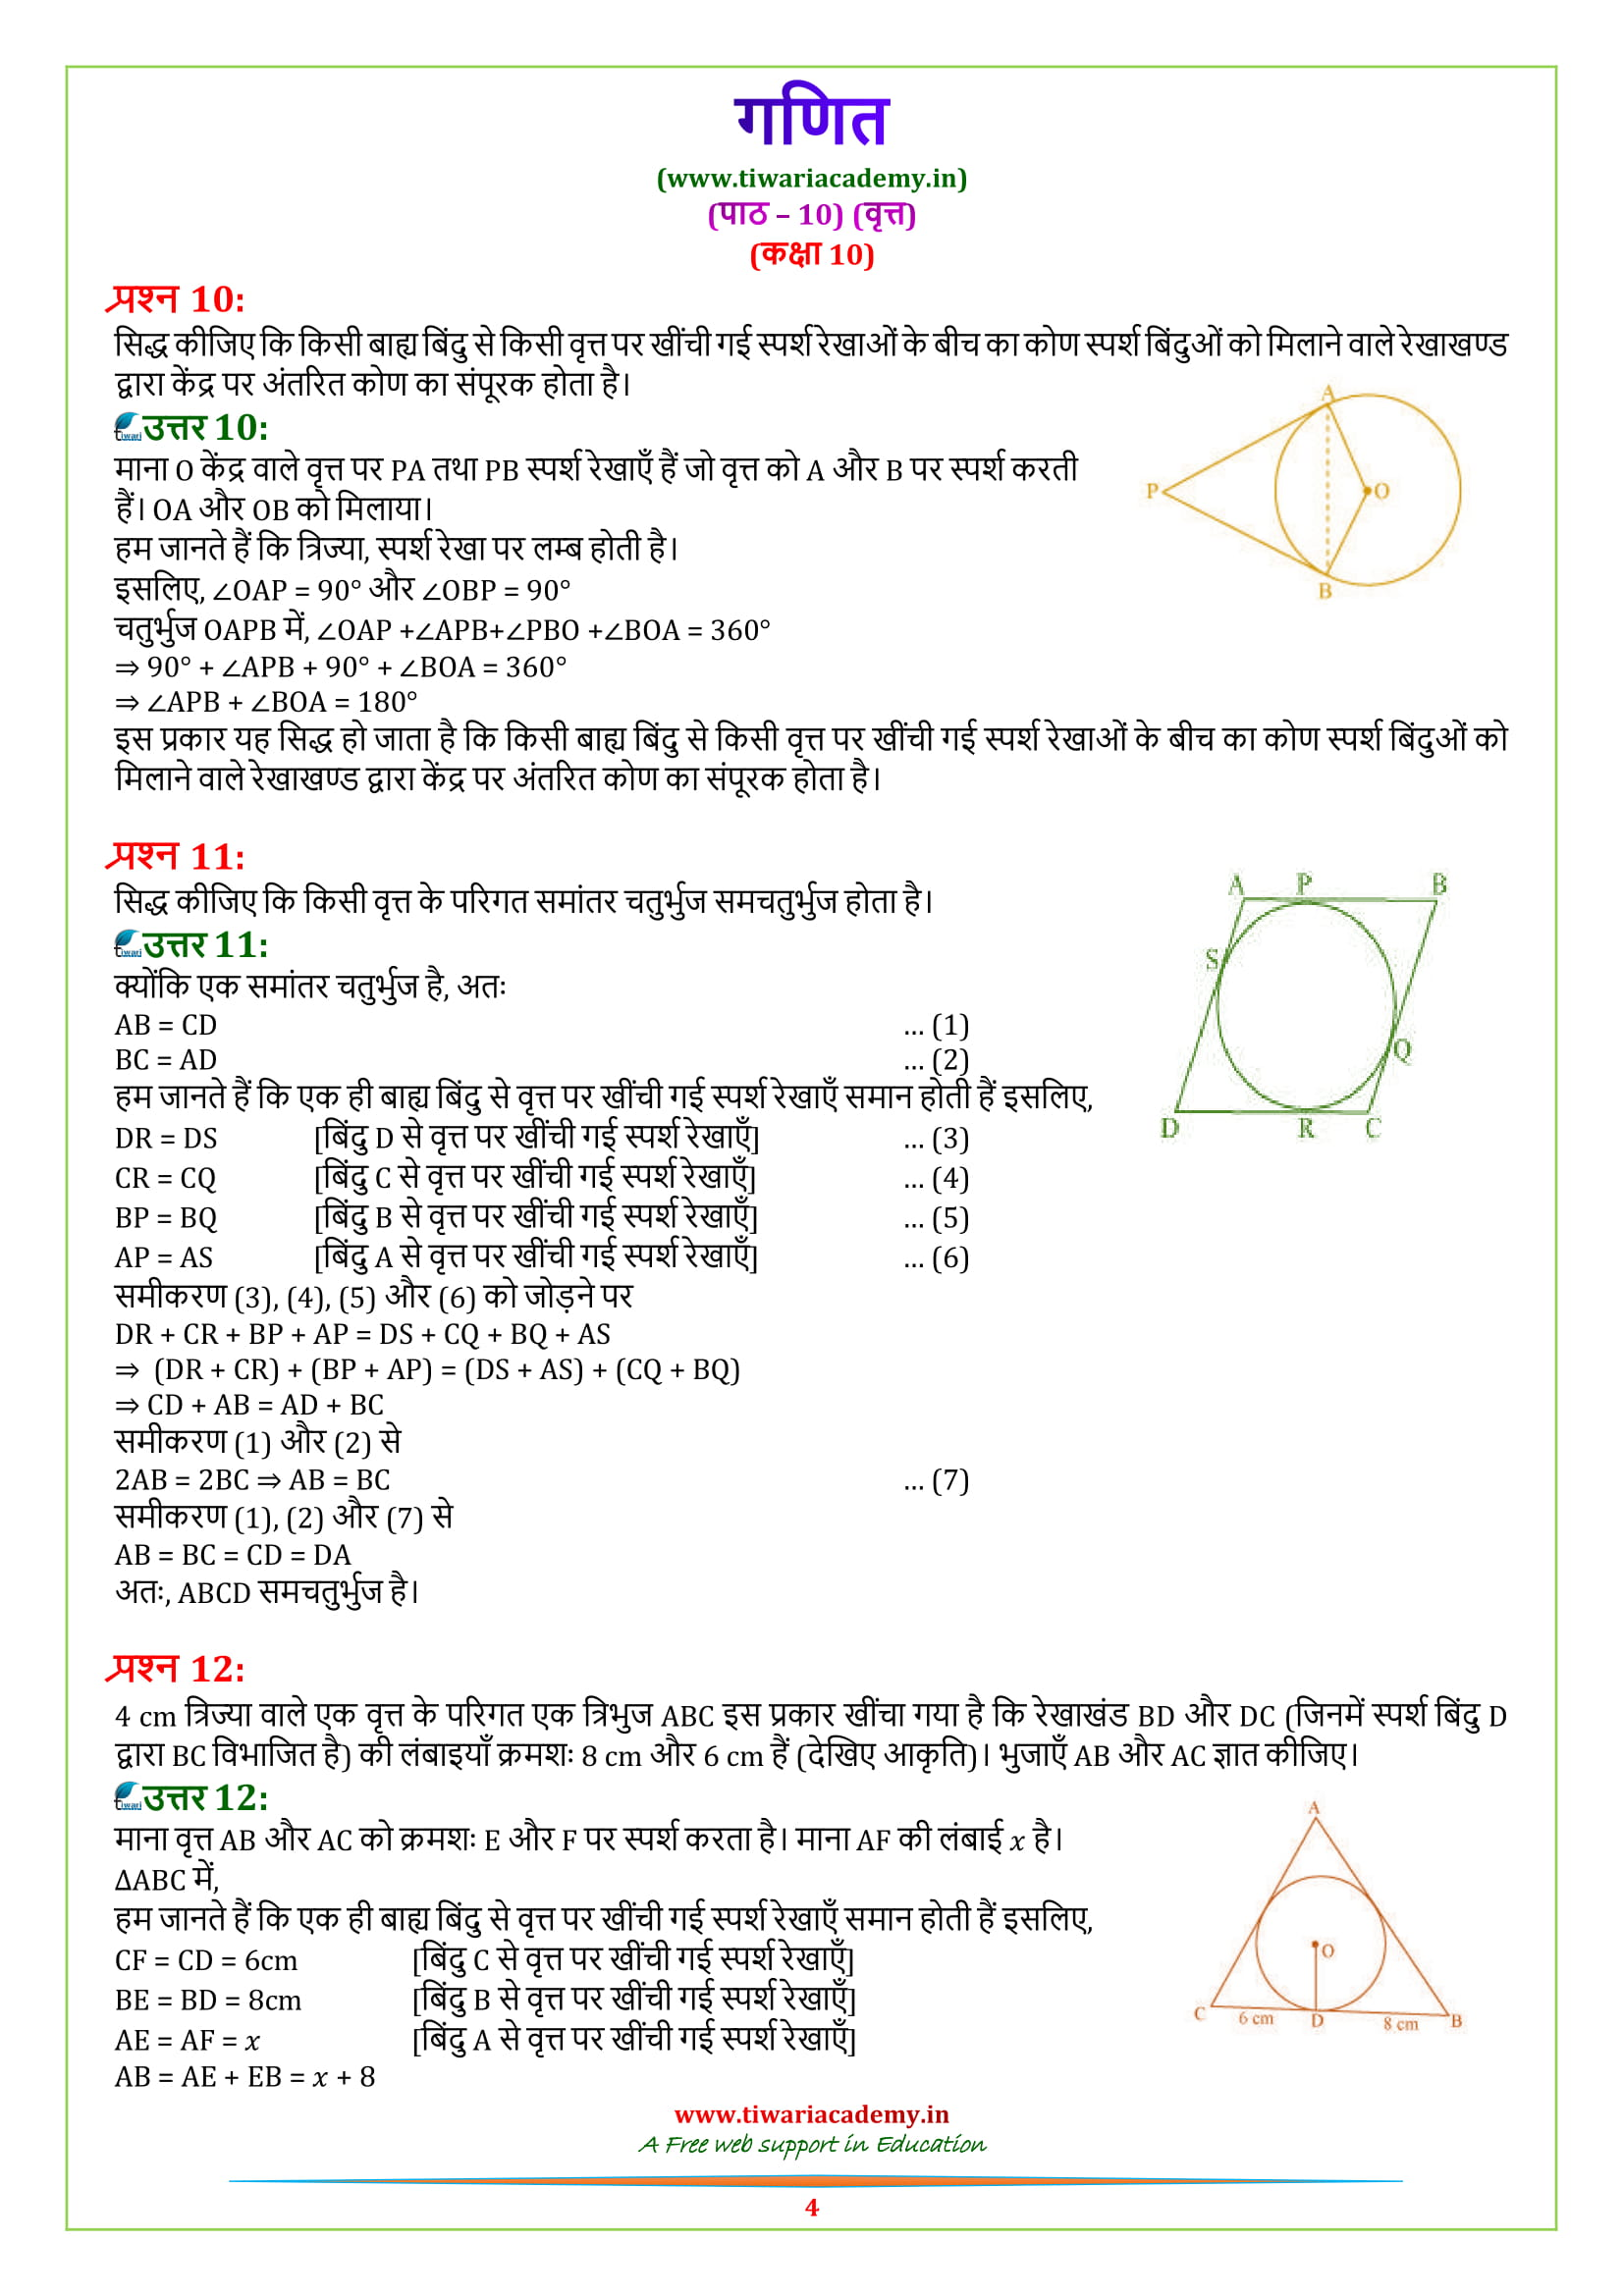 NCERT Solutions for class 10 Maths Exercise 10.2 all question answers